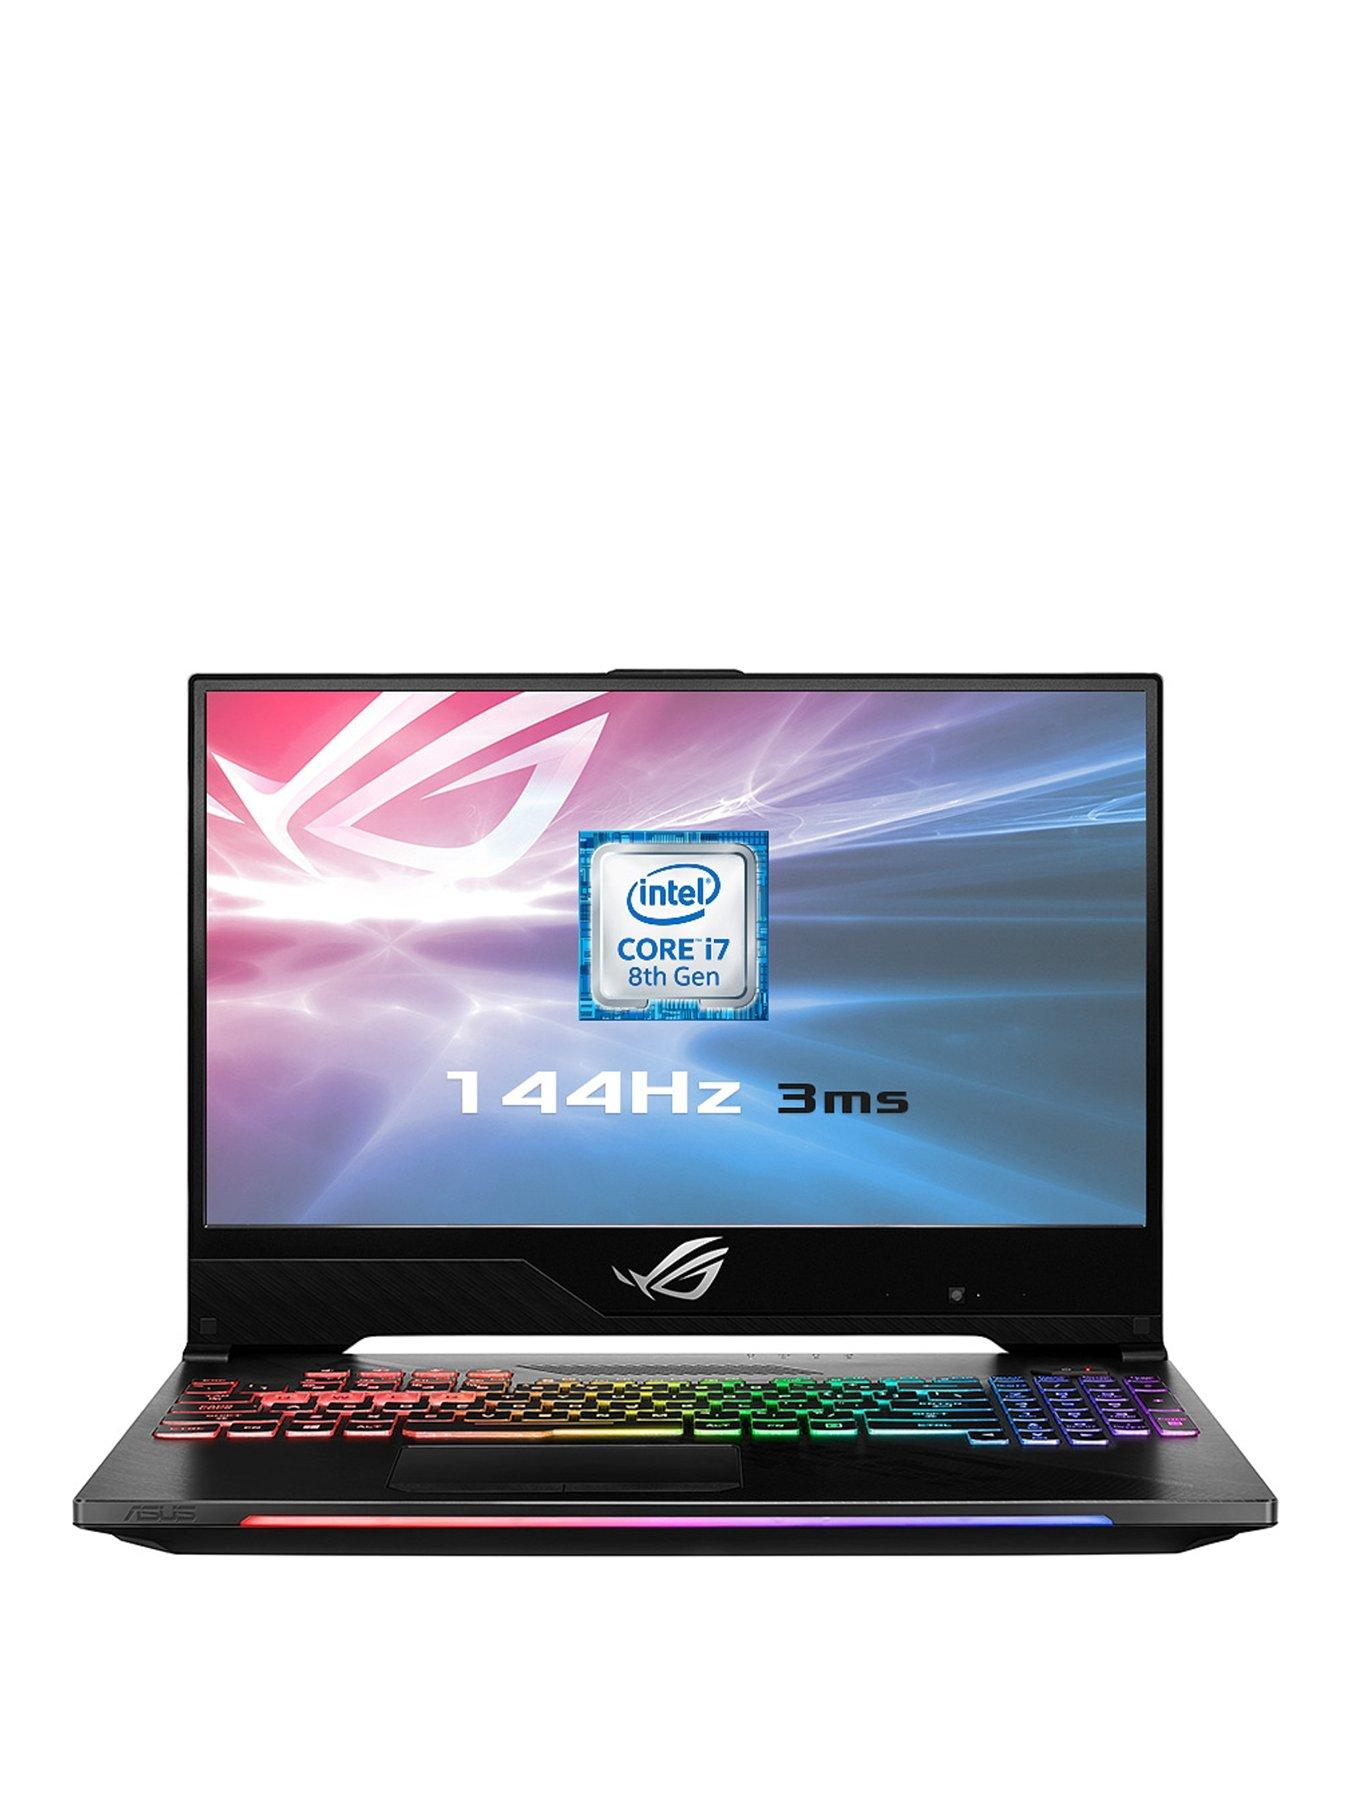 Asus ROG Strix Hero 2 GL504GM-ES192T Intel Core i7H, GeForce GTX 1060 6GB, 16GB RAM, 1TB SSHD & 256GB SSD, 15.6in IPS 144Hz Gaming Laptop with Bag & Headset + Call of Duty Black Ops 4